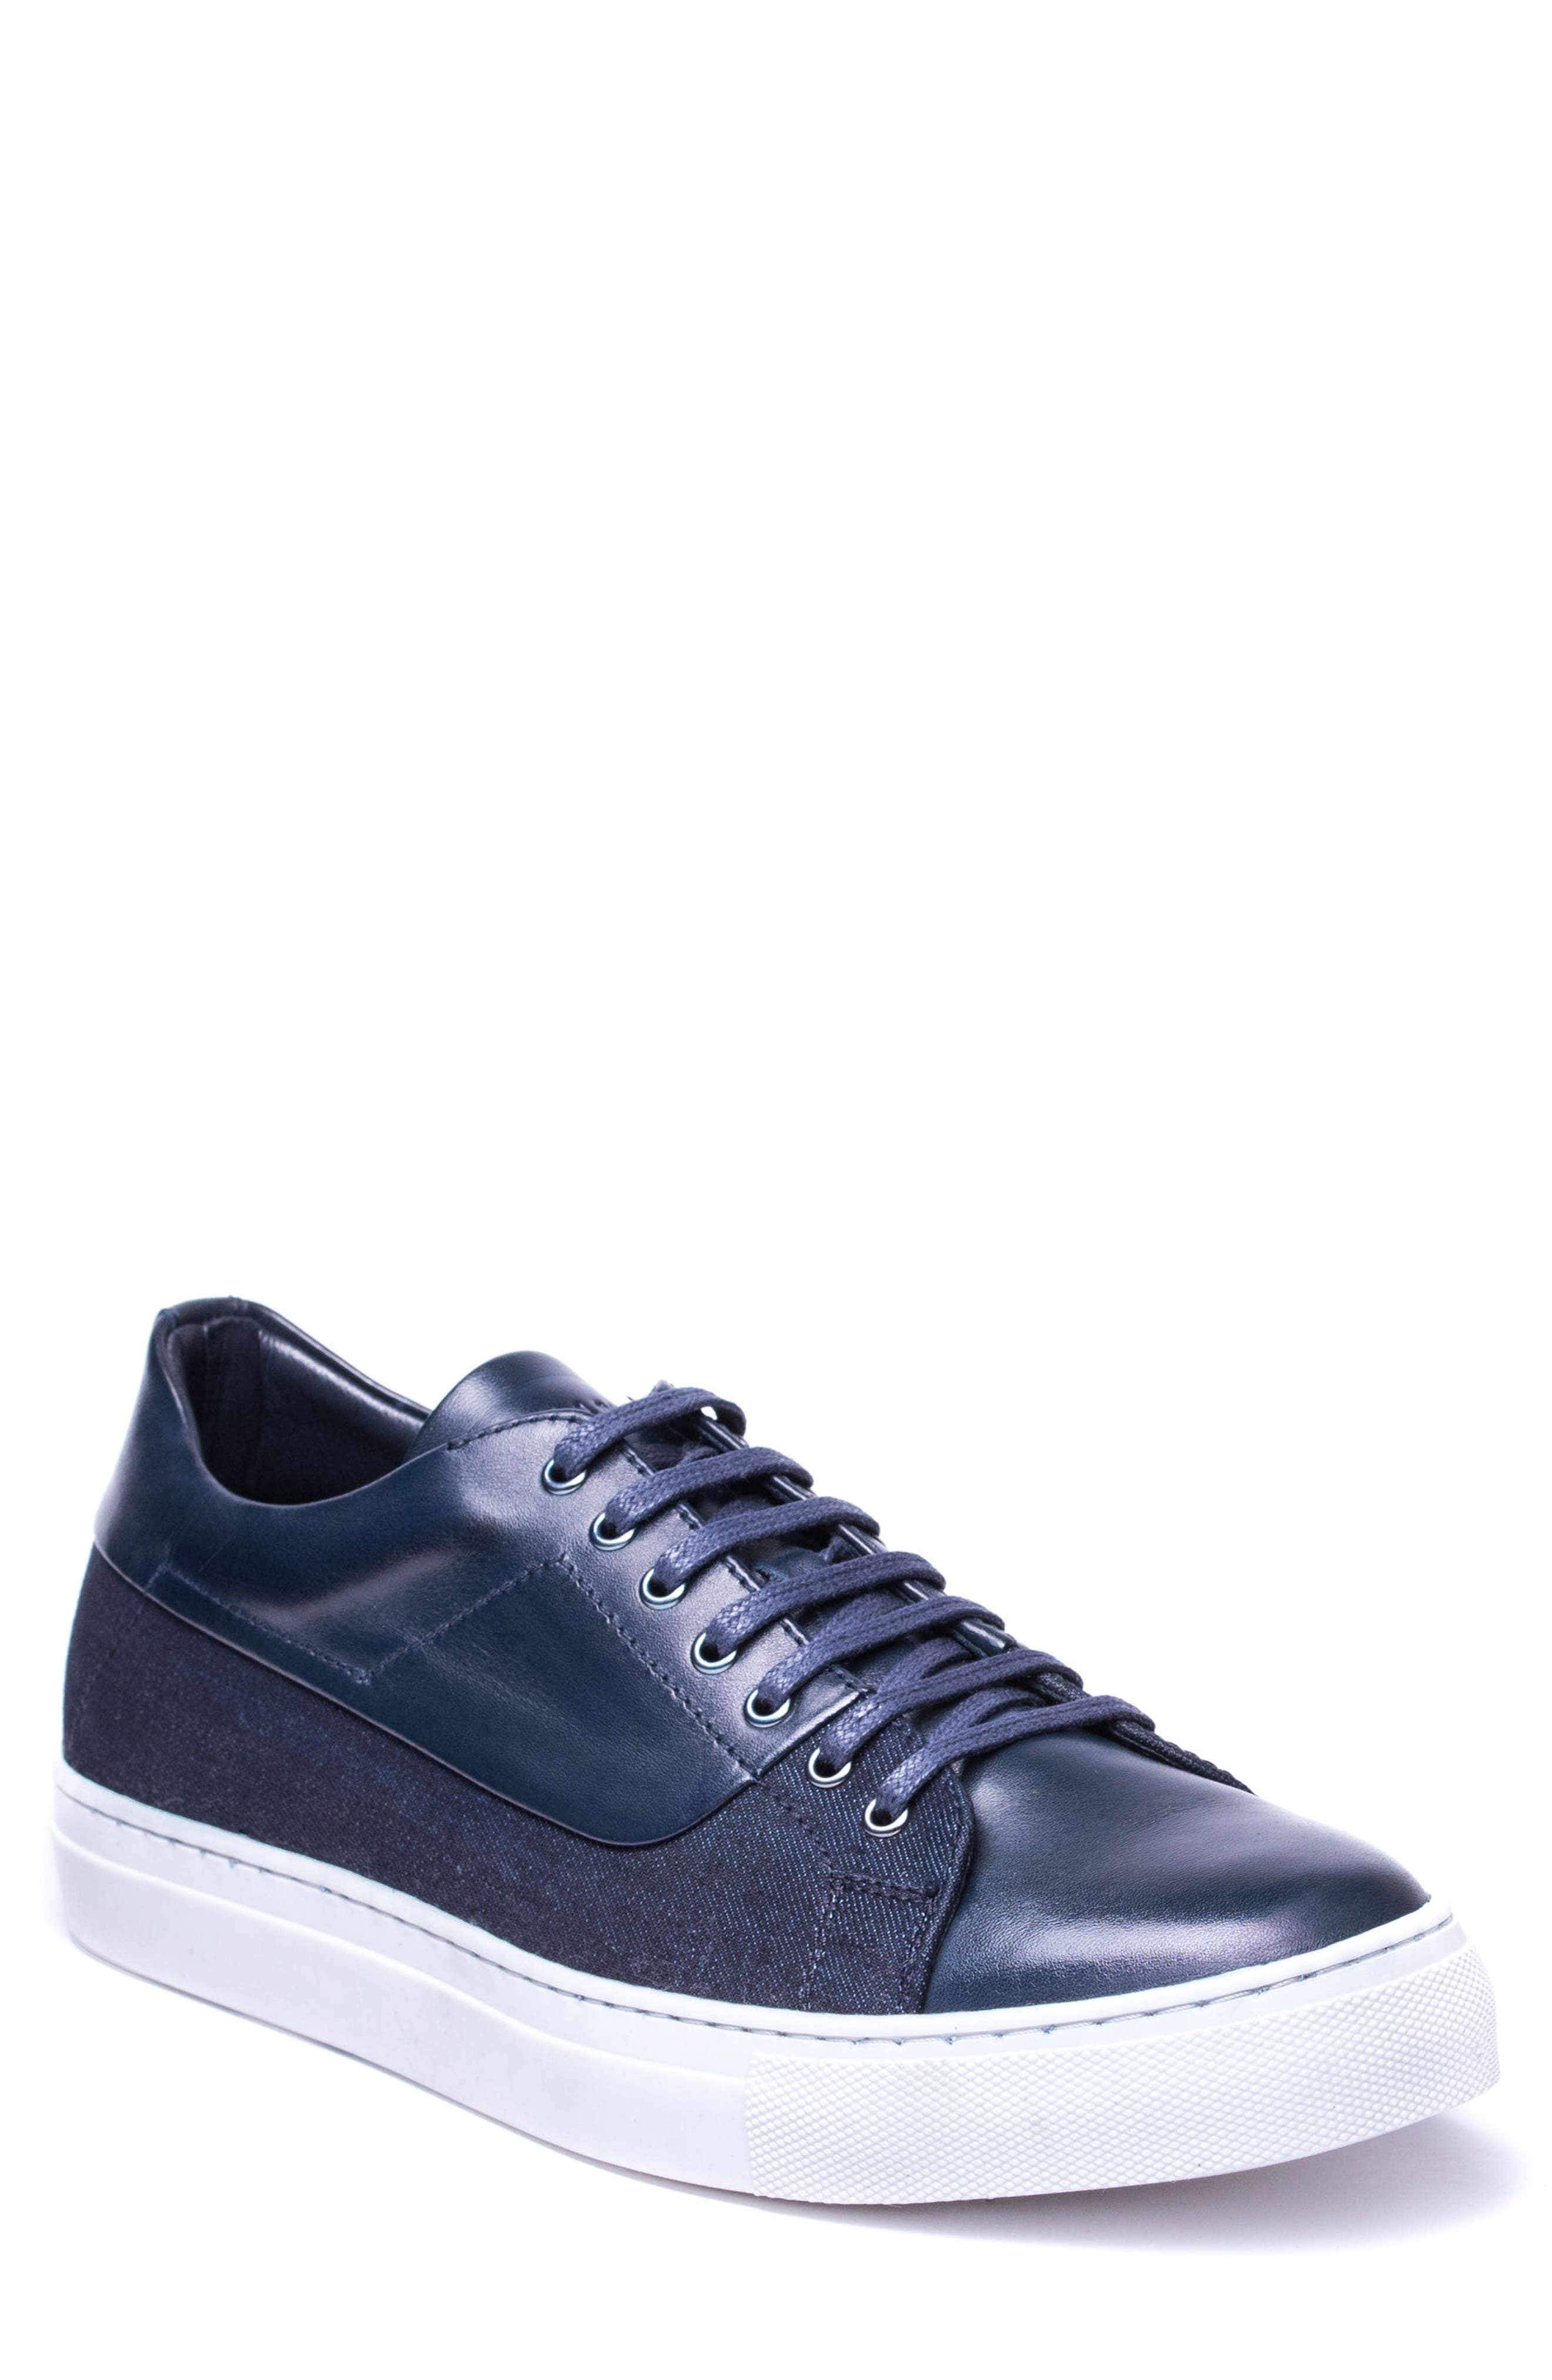 Luke Low Top Sneaker,                             Main thumbnail 1, color,                             NAVY LEATHER